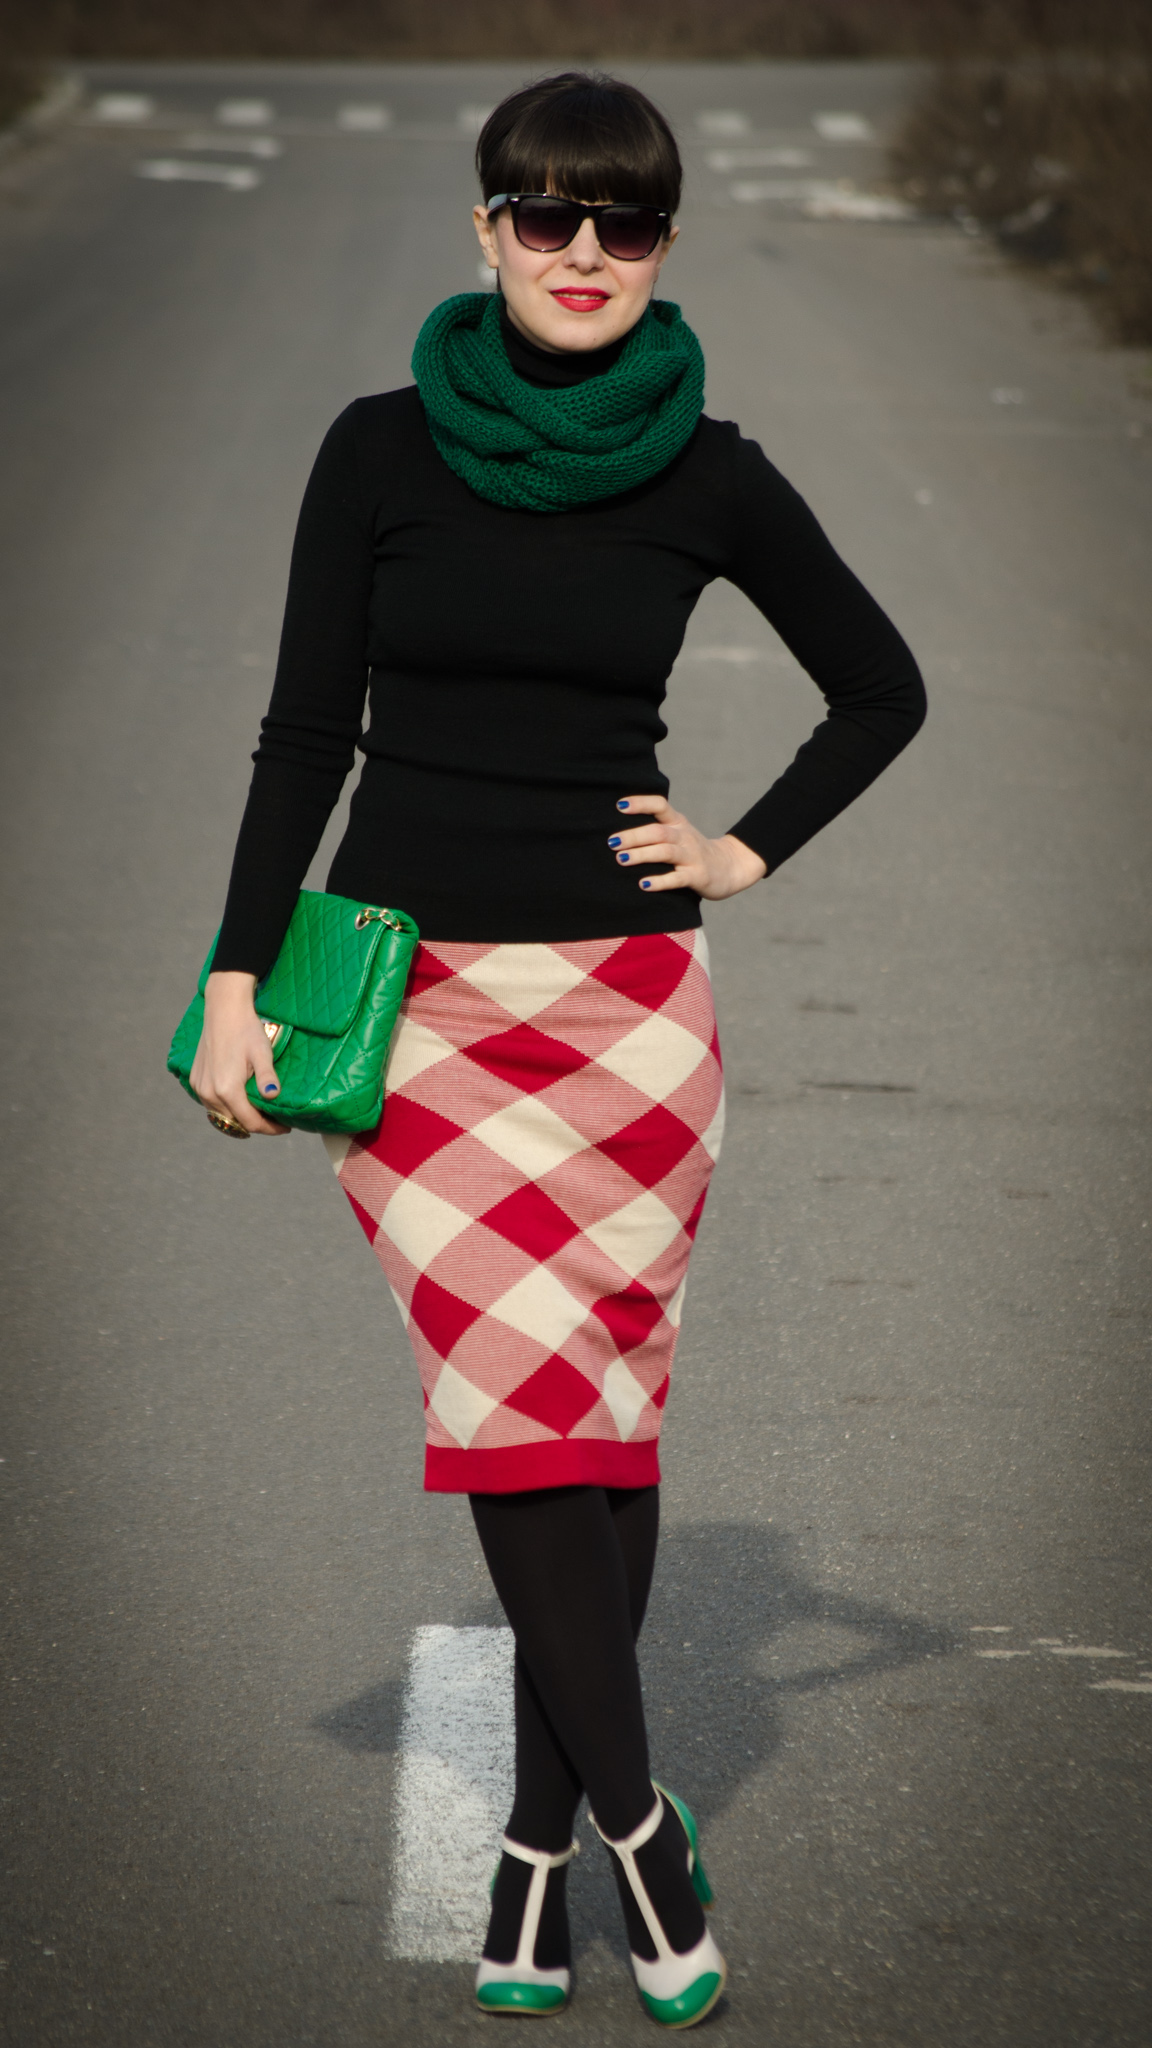 red checkered pencil skirt checkers black turtleneck green scarf bag handbag nude & green high heels tina R koton Christmas look outfit